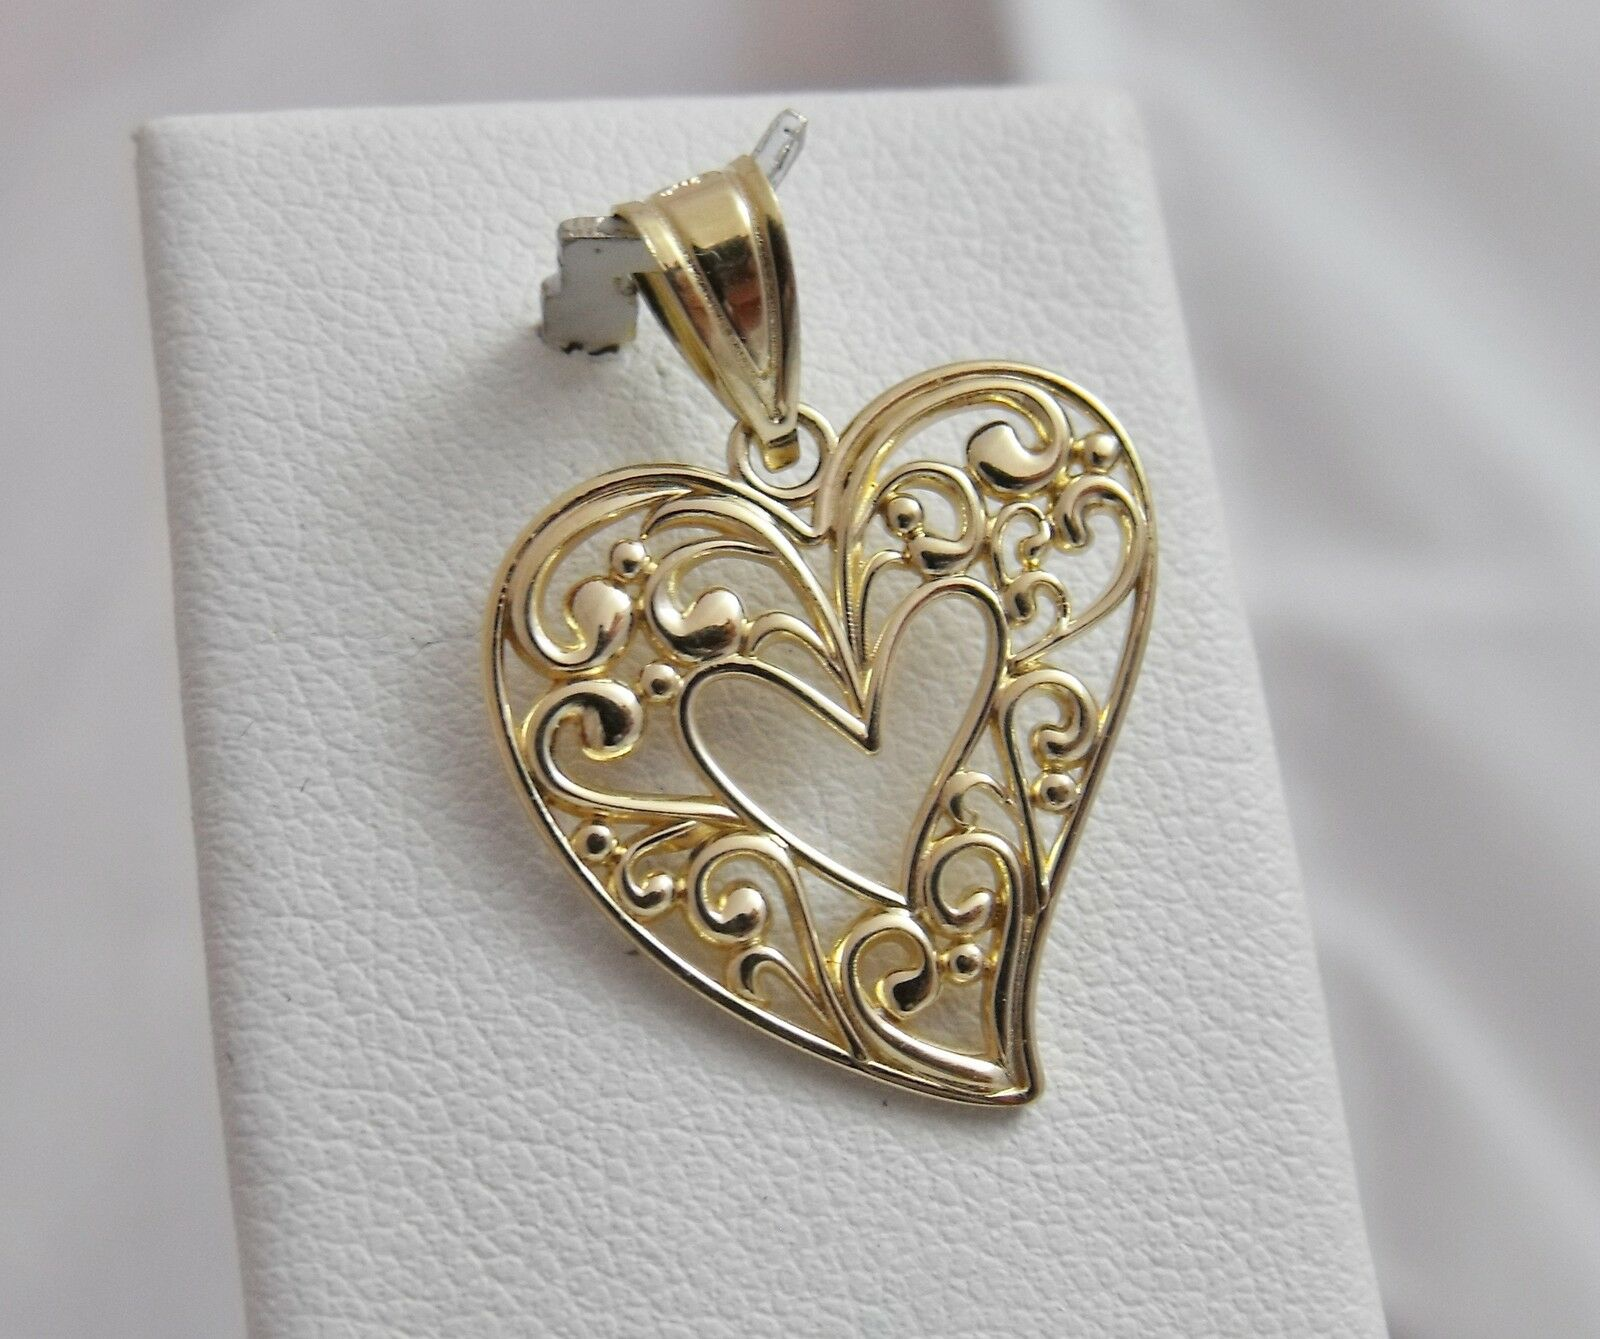 14K gold Open Scroll Design Heart Charm Pendant 1.4gr